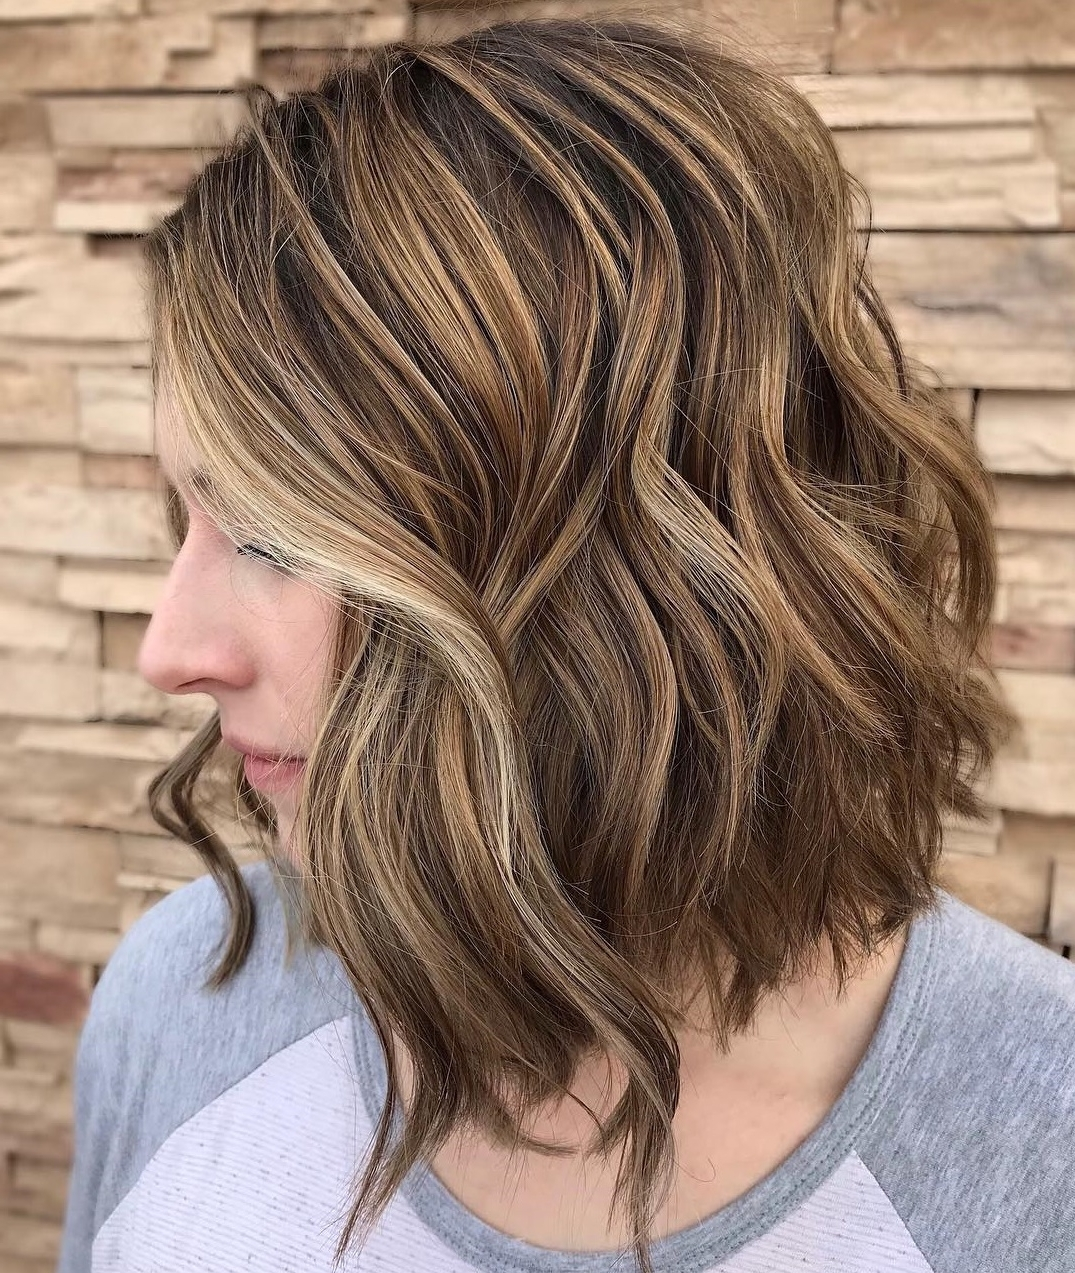 60 Medium Length Haircuts And Hairstyles To Pull Off In 2020 Medium Hairstyles With Bangs And Highlights